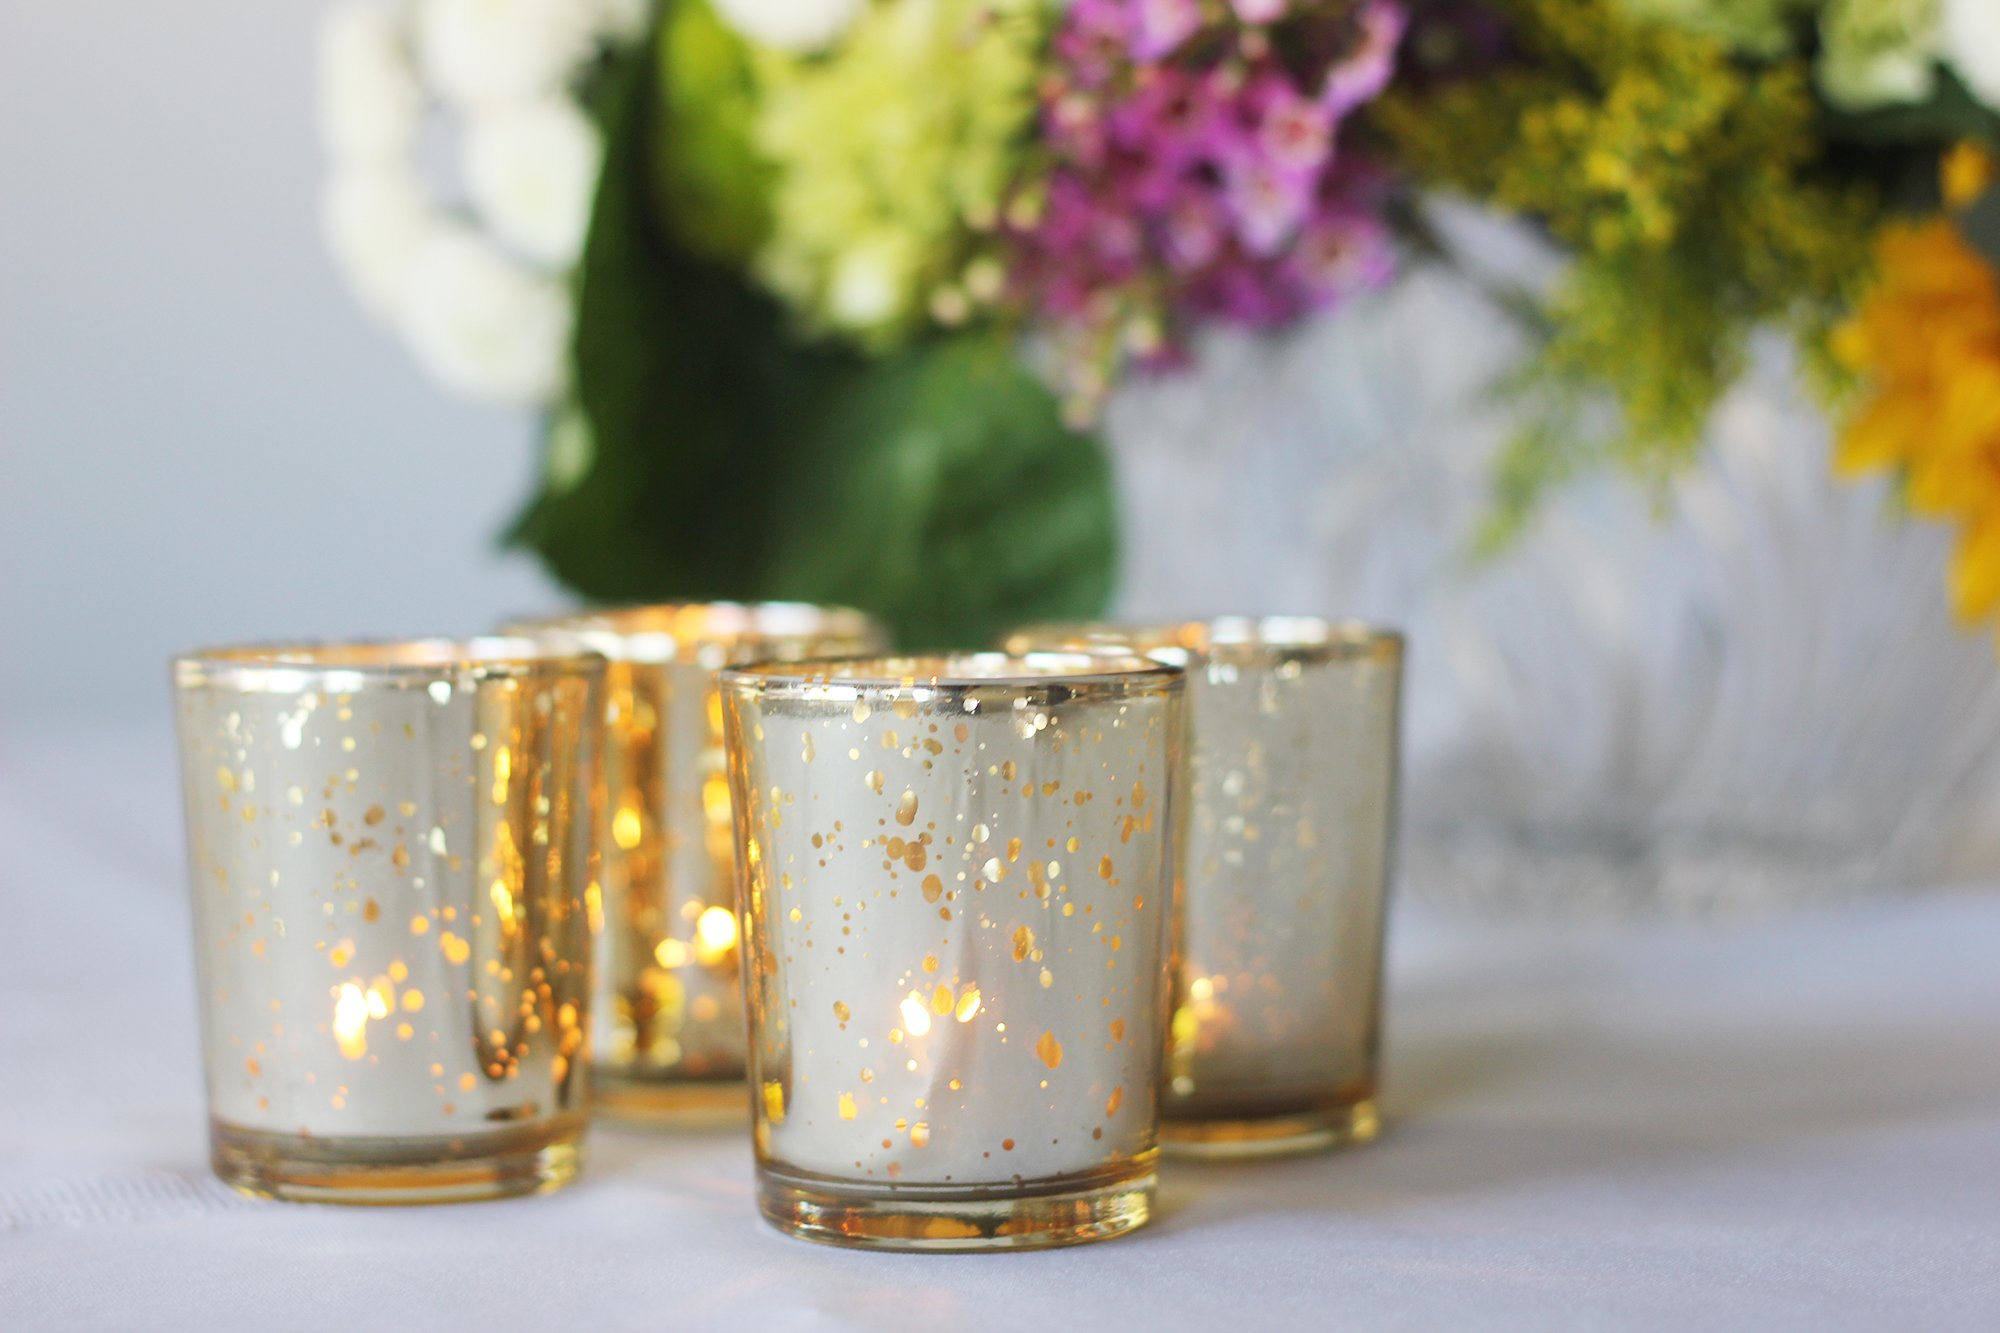 item 1 Just Artifacts Round Mercury Glass Votive Candle Holders Speckled  Gold (11 pcs) -Just Artifacts Round Mercury Glass Votive Candle Holders  Speckled ...